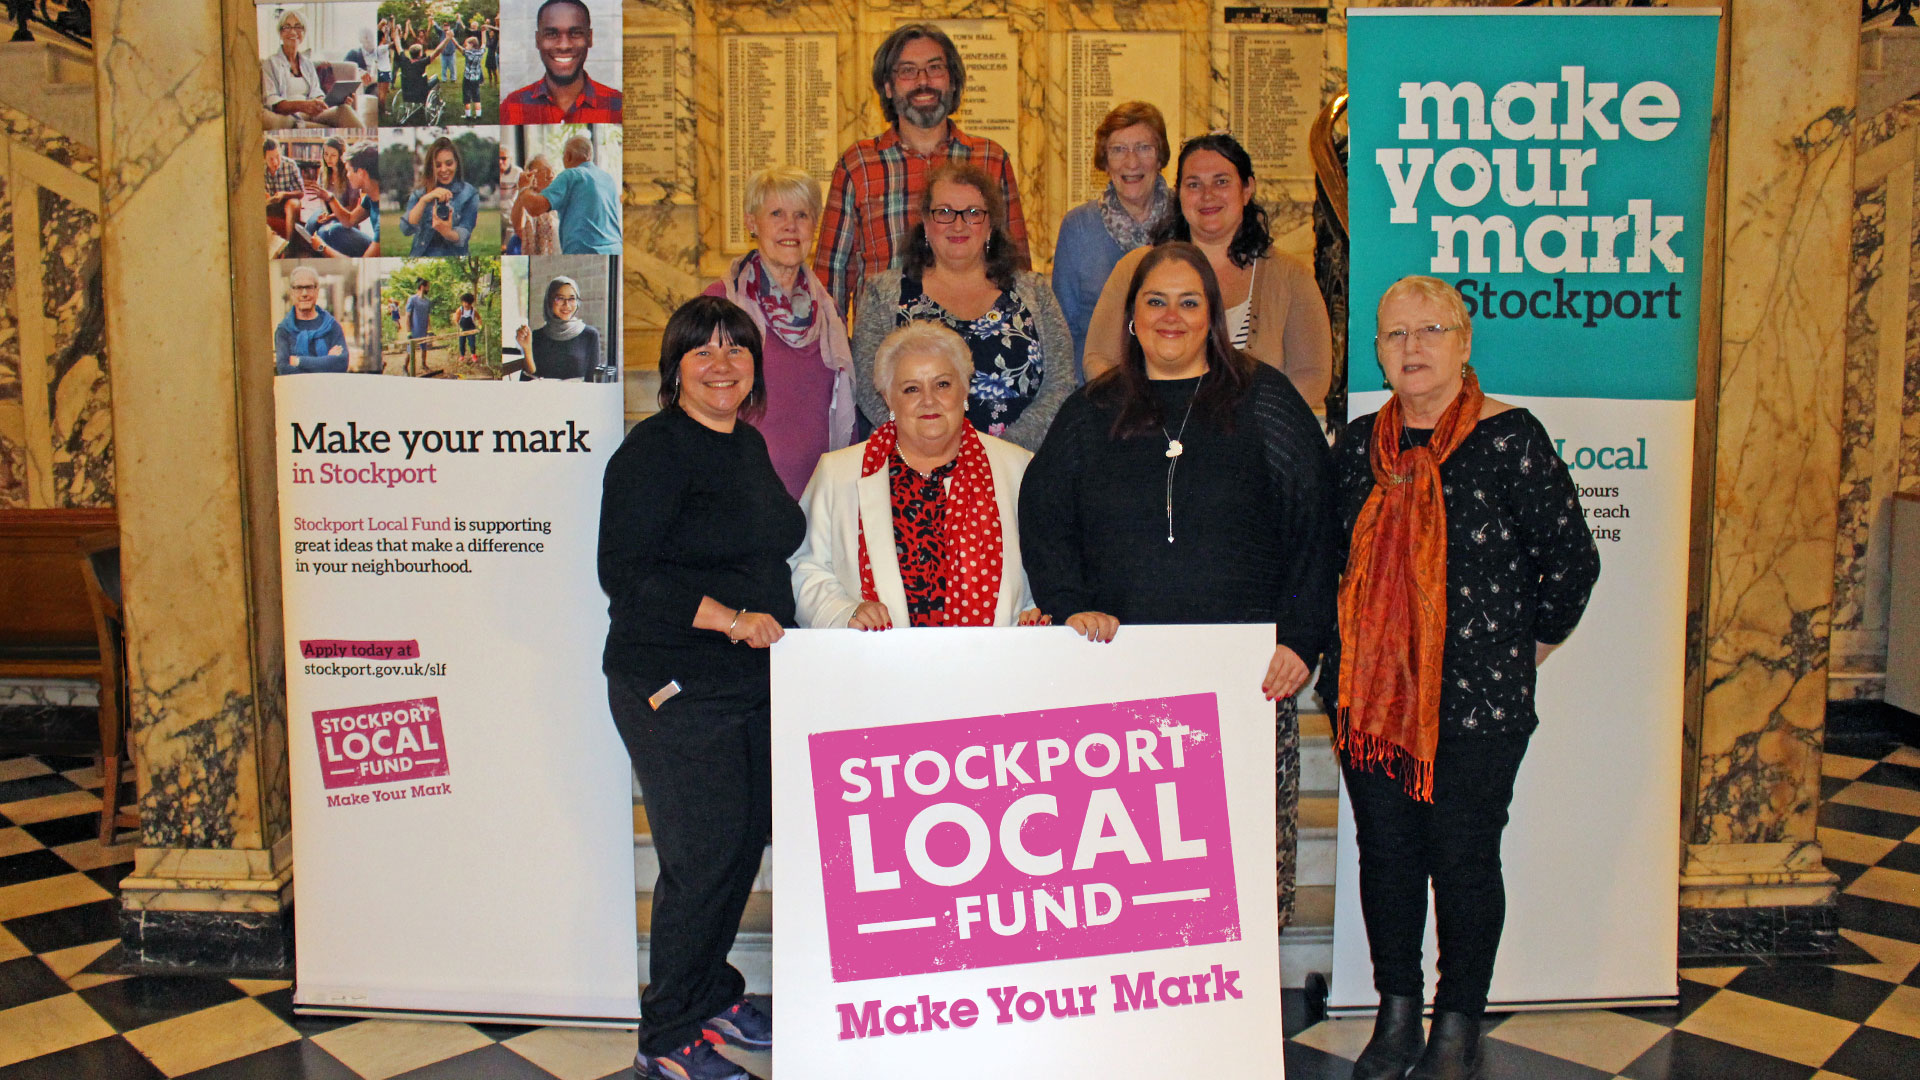 Innovative community projects blossoming as Stockport Local nurtures new ideas